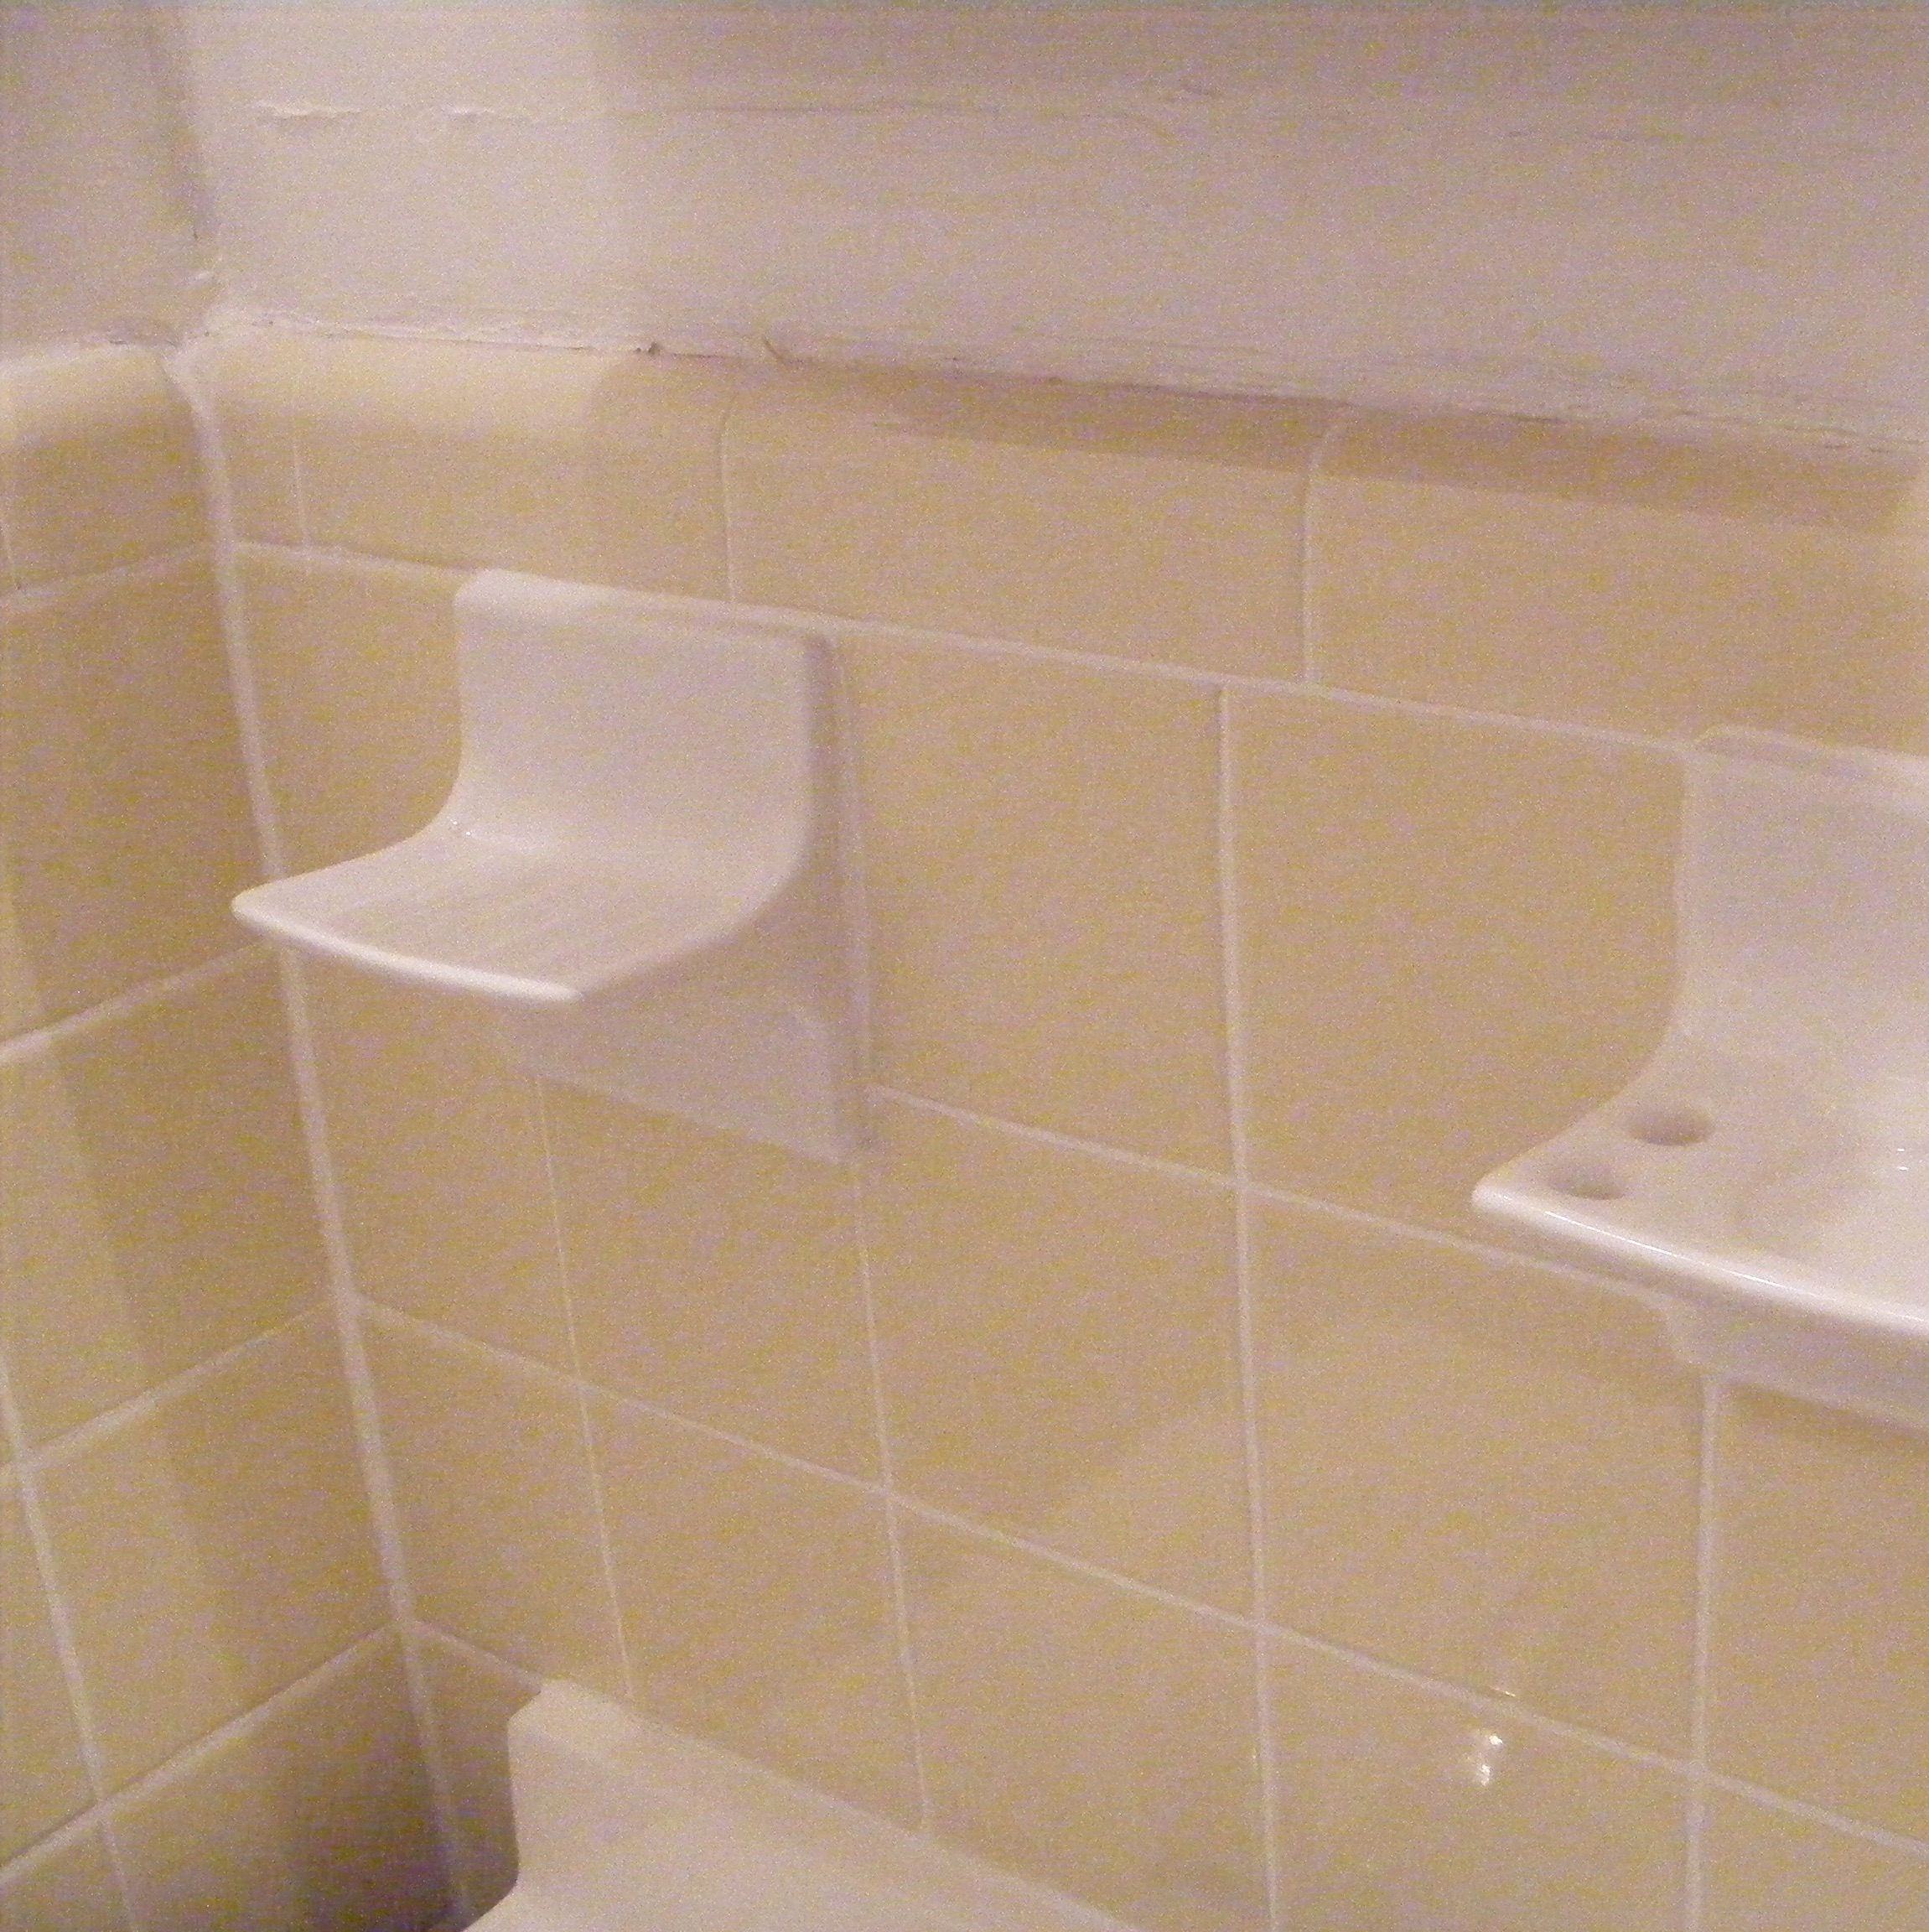 Bathroom tile toothbrush holder and soap holders both replaced to match and harmonize with existing toles